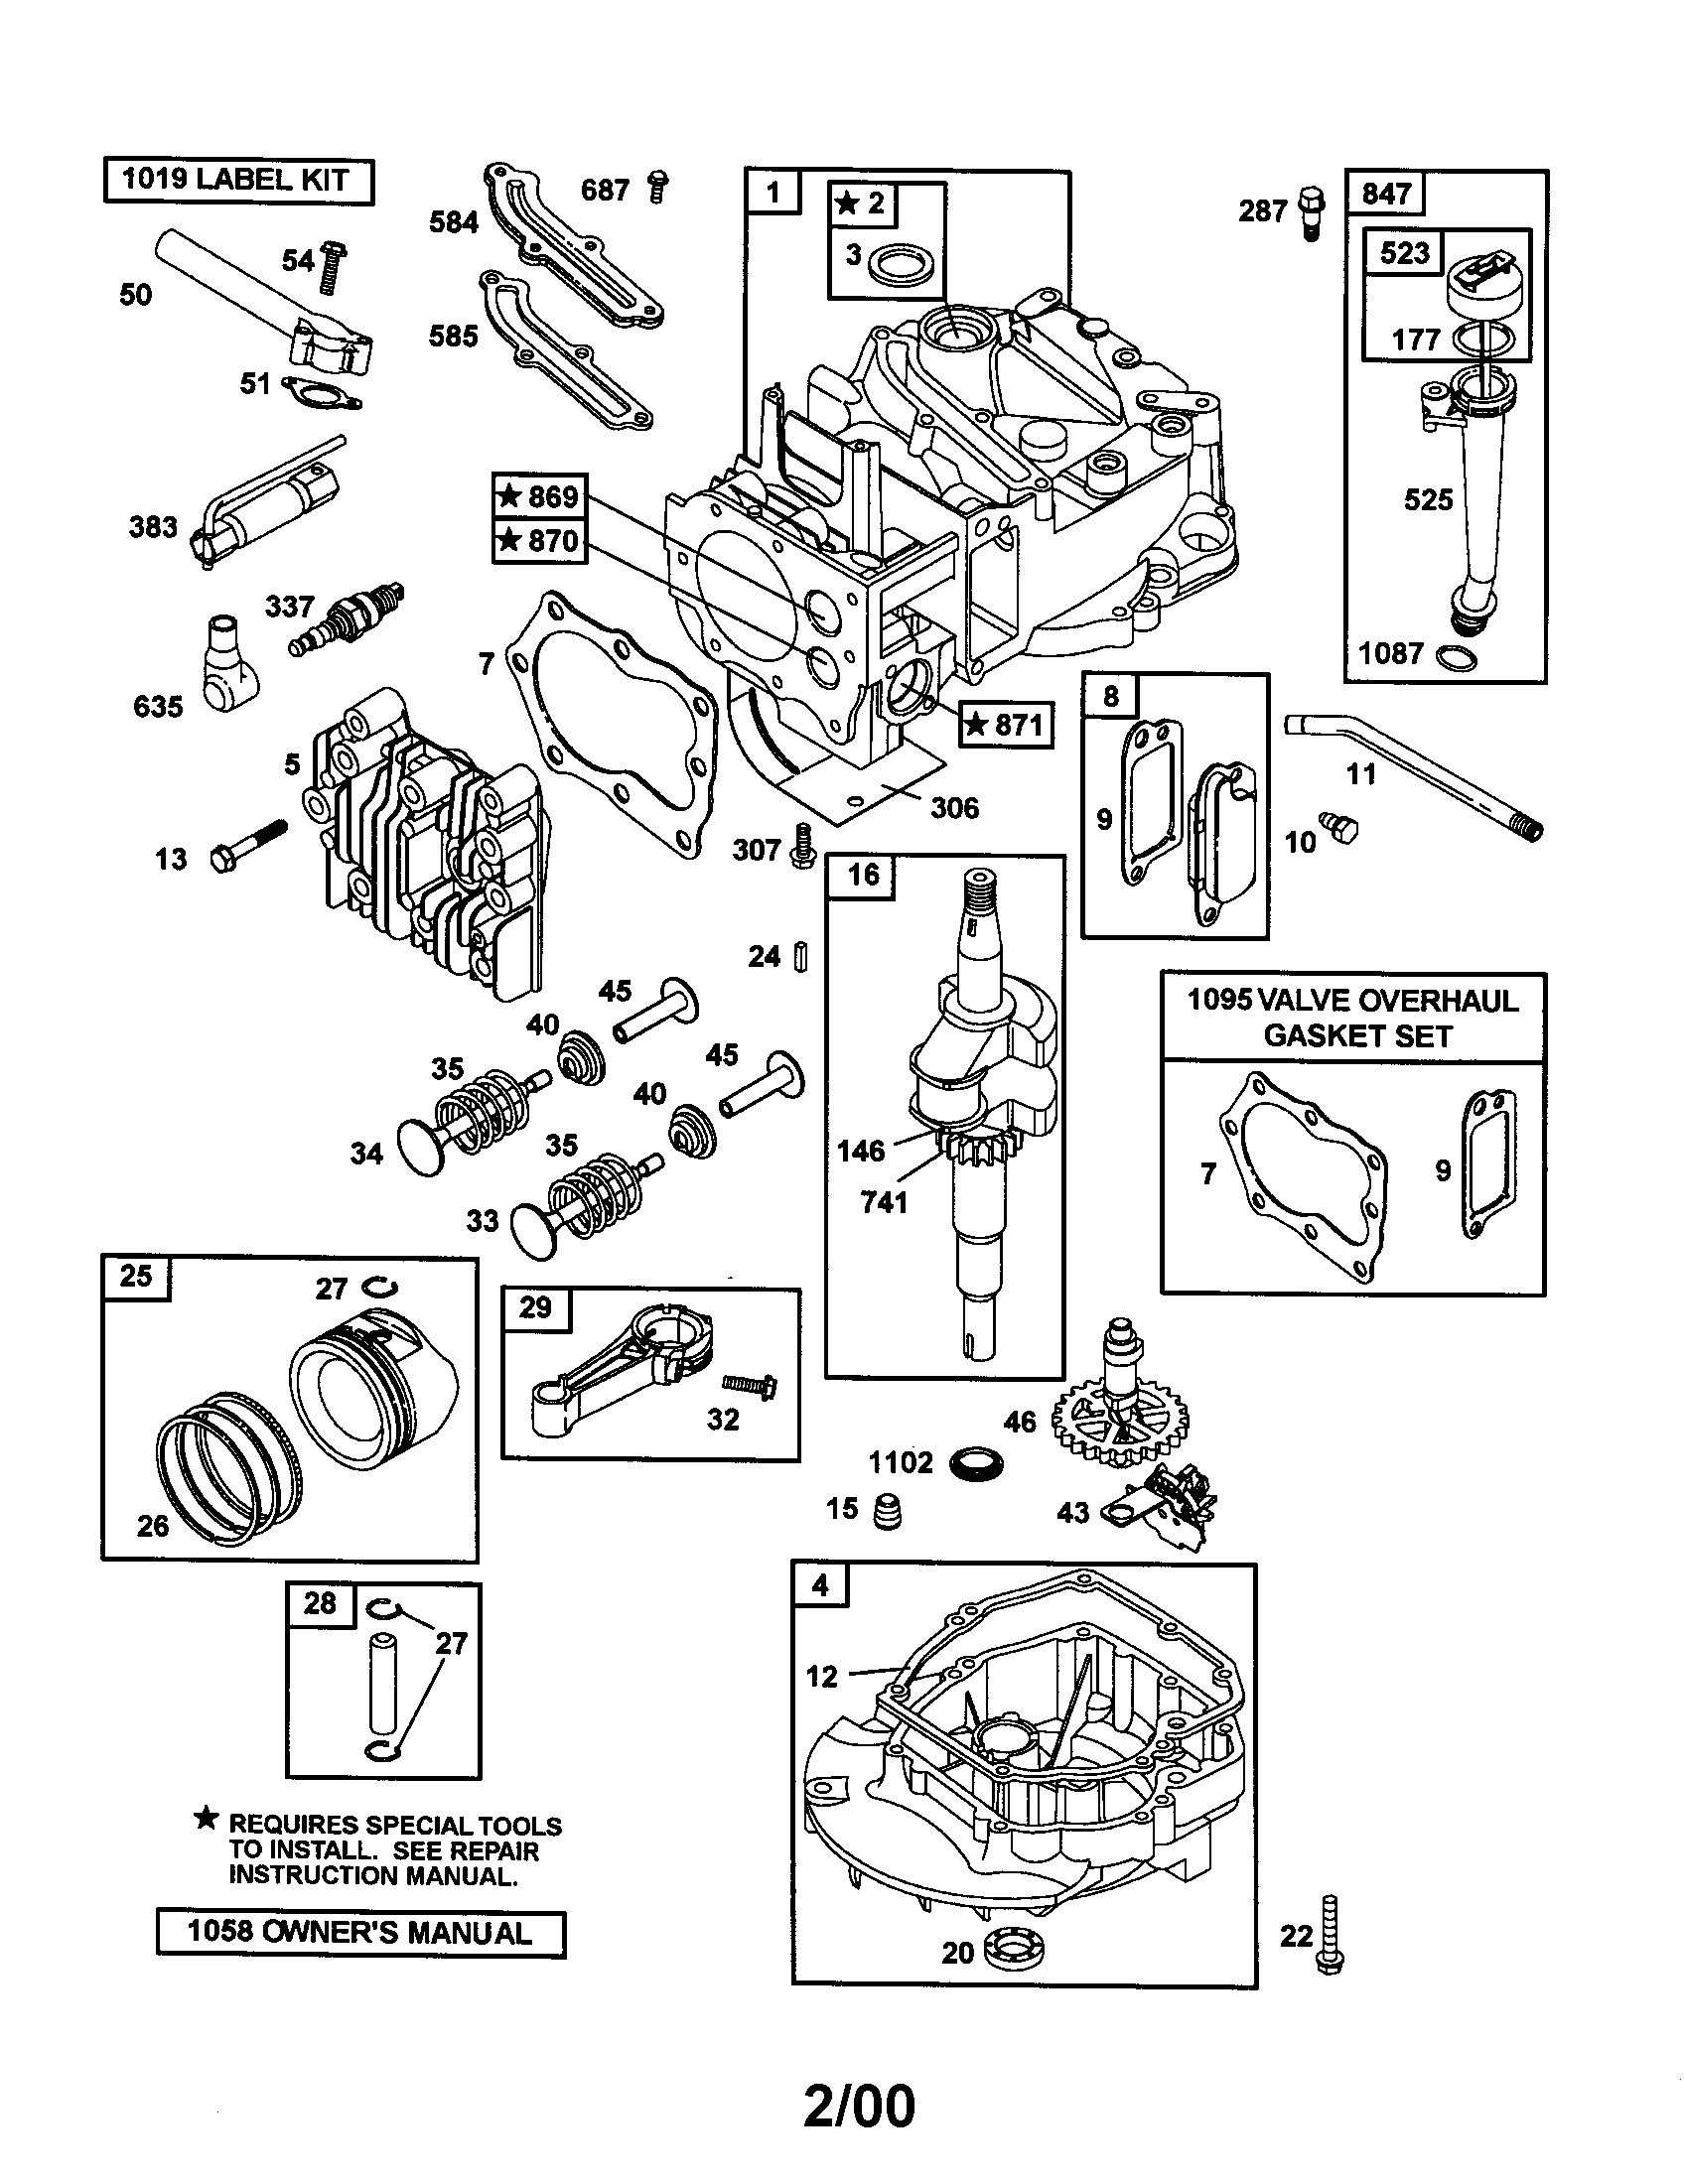 hight resolution of 10 hp brigg and stratton wiring diagram